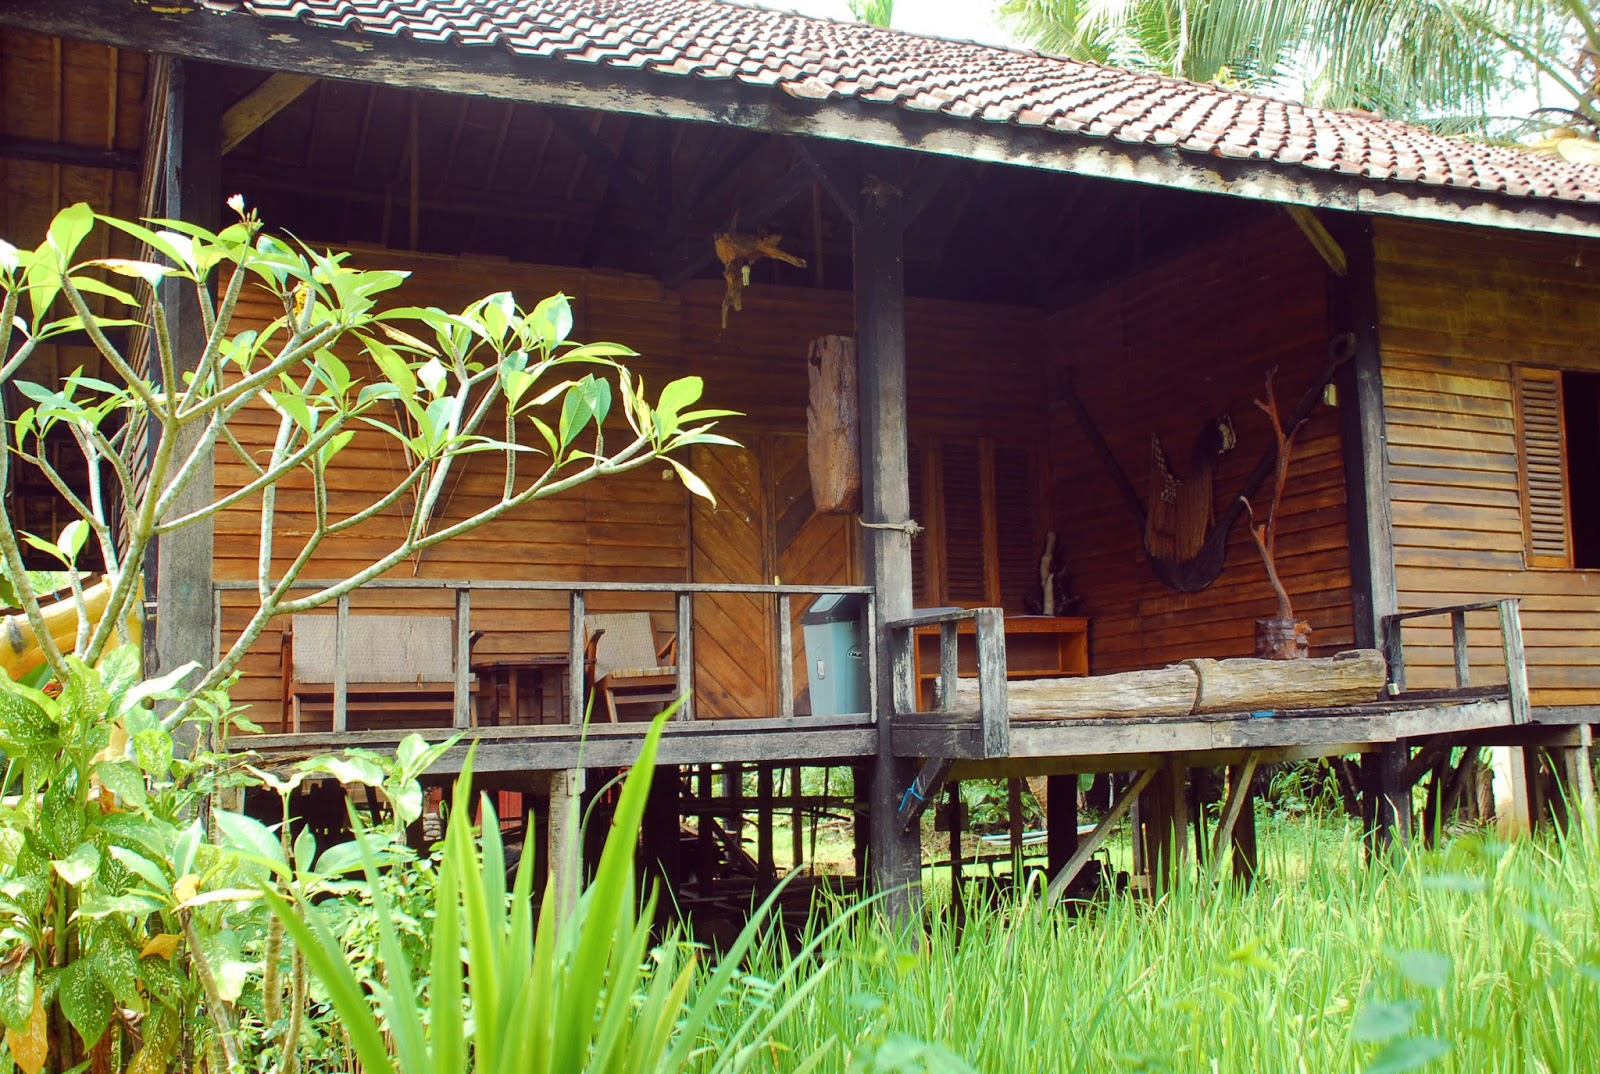 Penginapan / Cottage di The Pikas Aartventure Resort